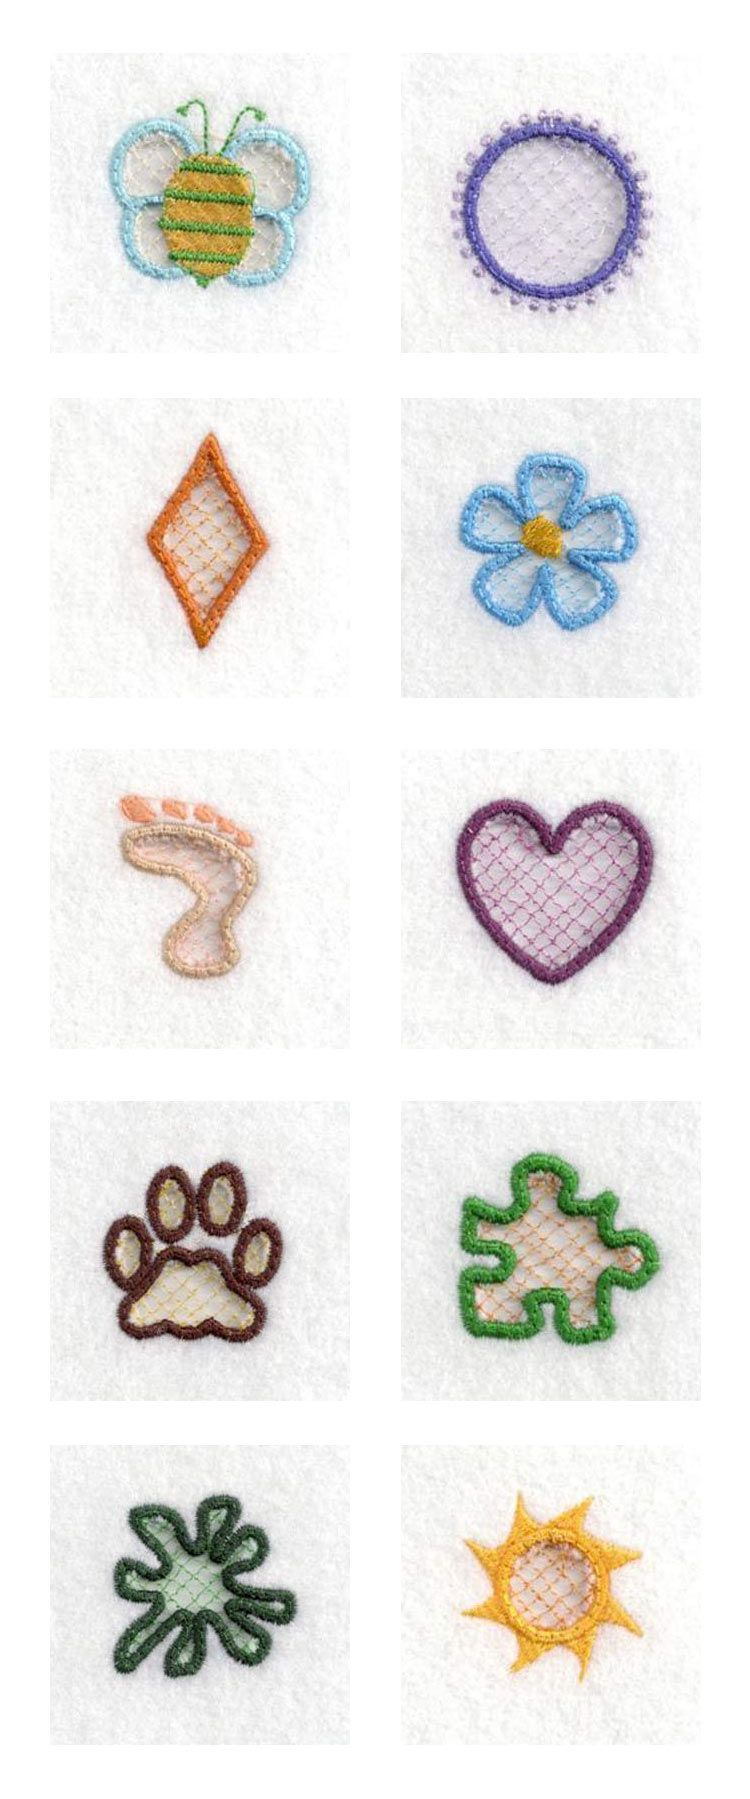 Cut Out Charms Embroidery Machine Design Details Designs By Sick